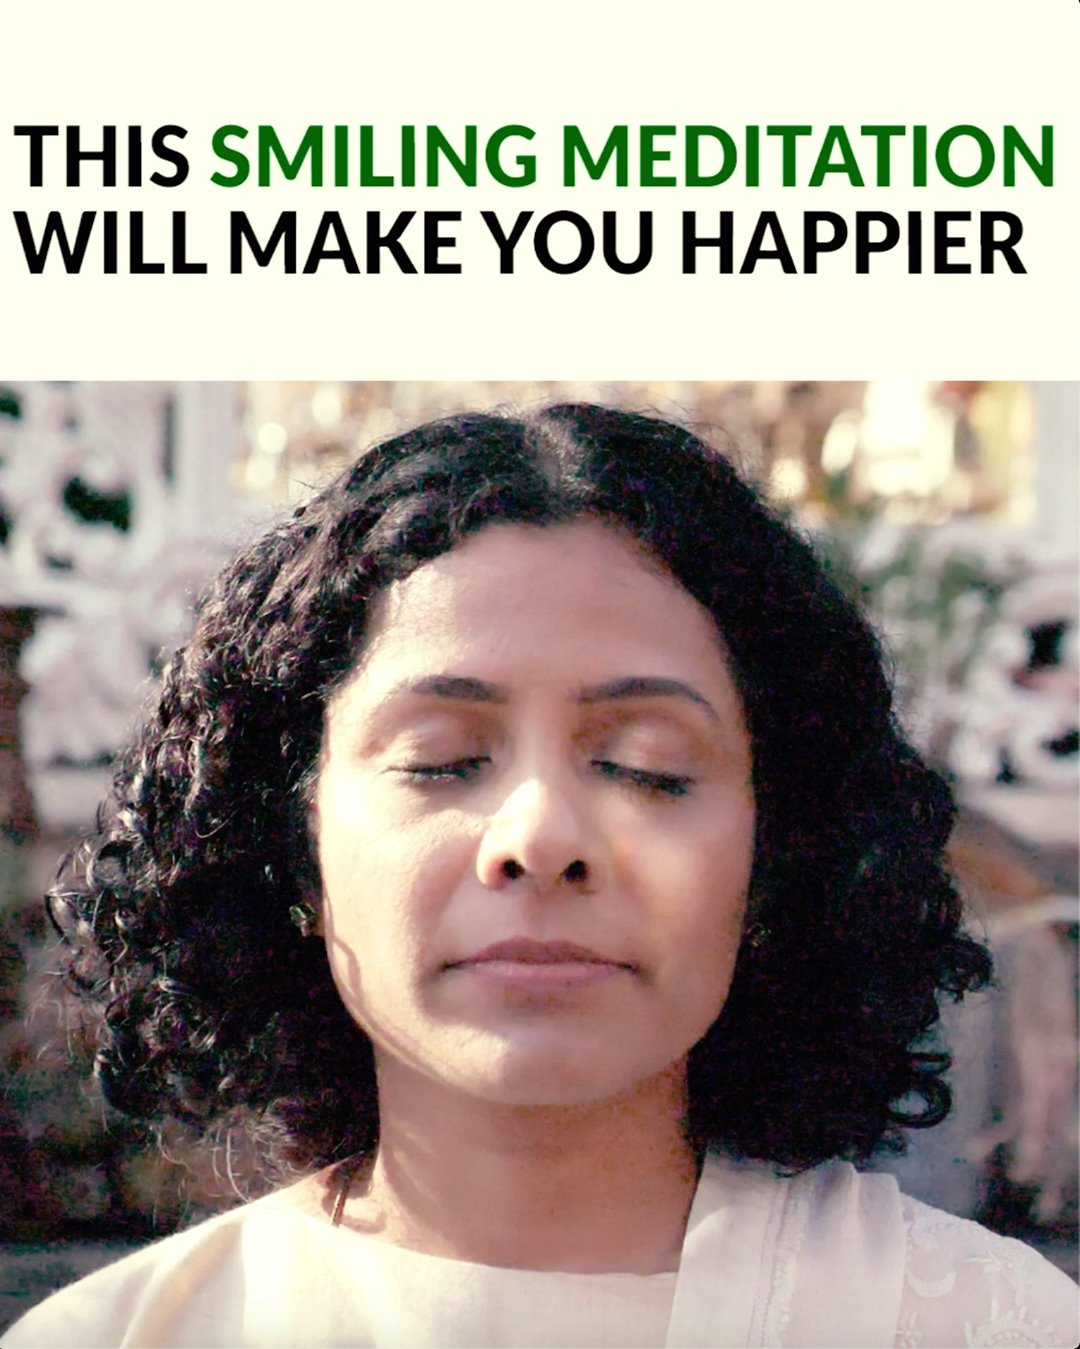 This smiling meditation will make you happier